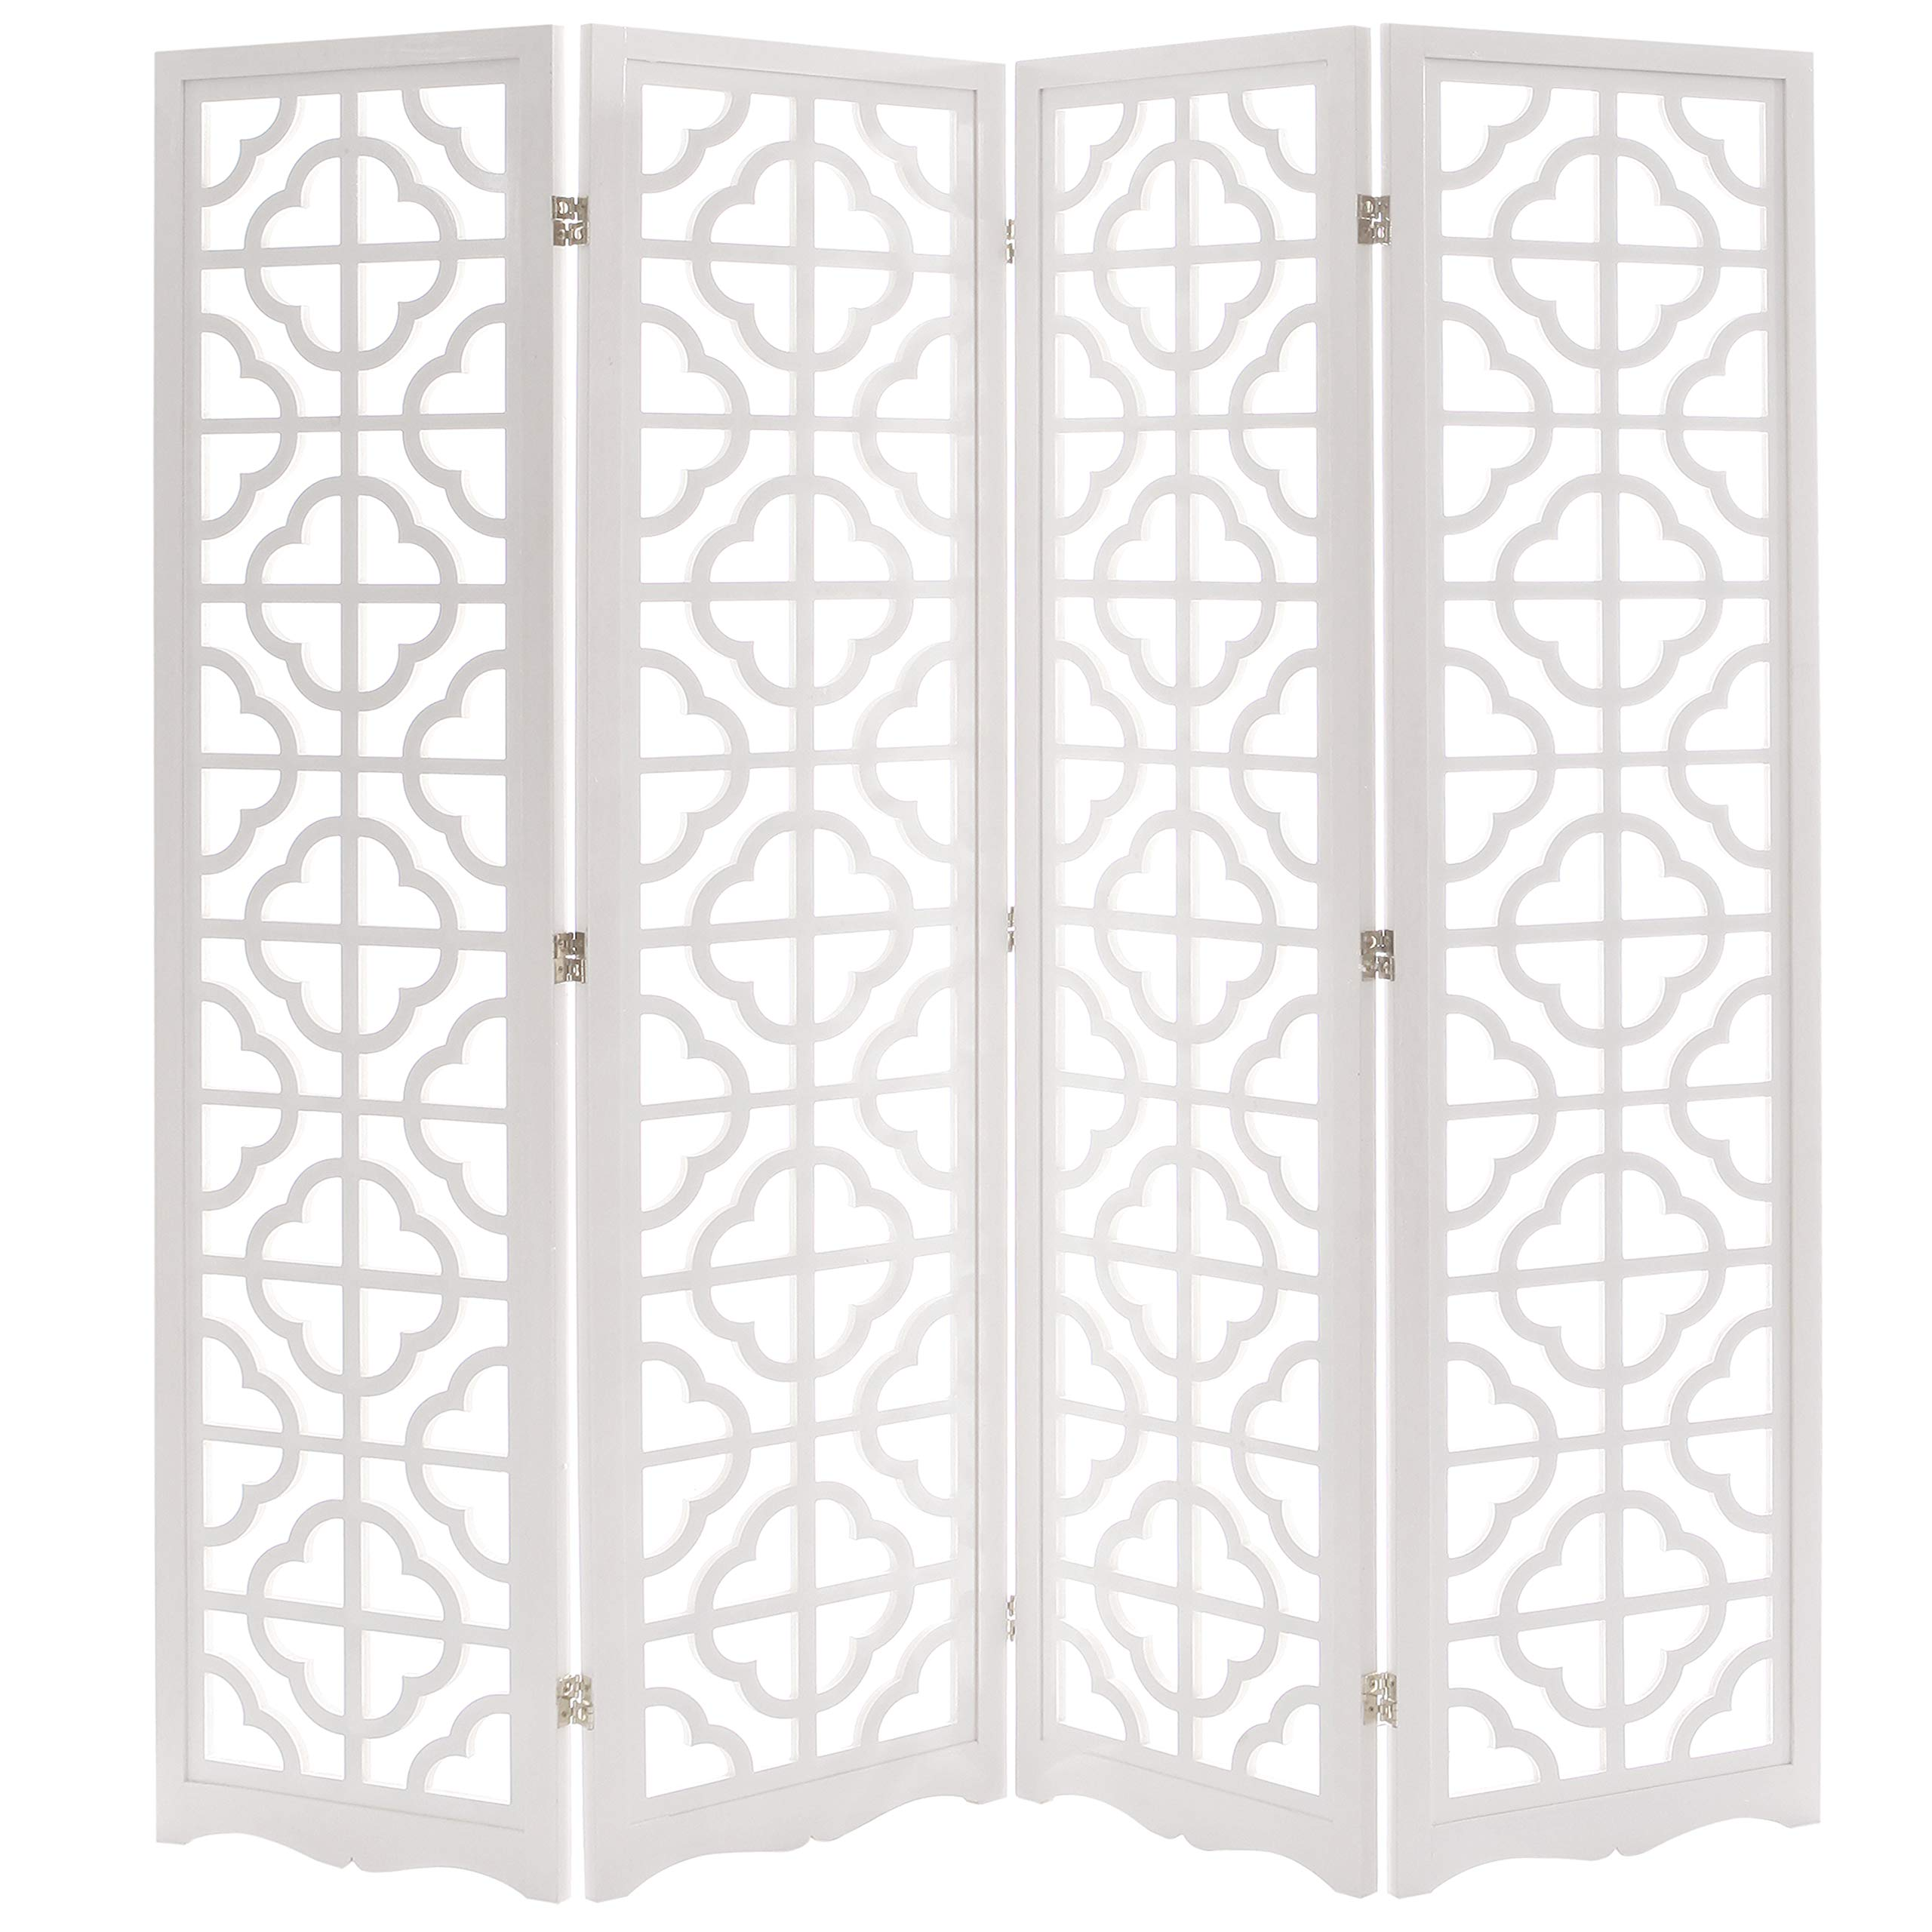 Modern 4 Panel Double Sided Folding Wood Screen, Moroccan Cutout Room Divider, White by MyGift